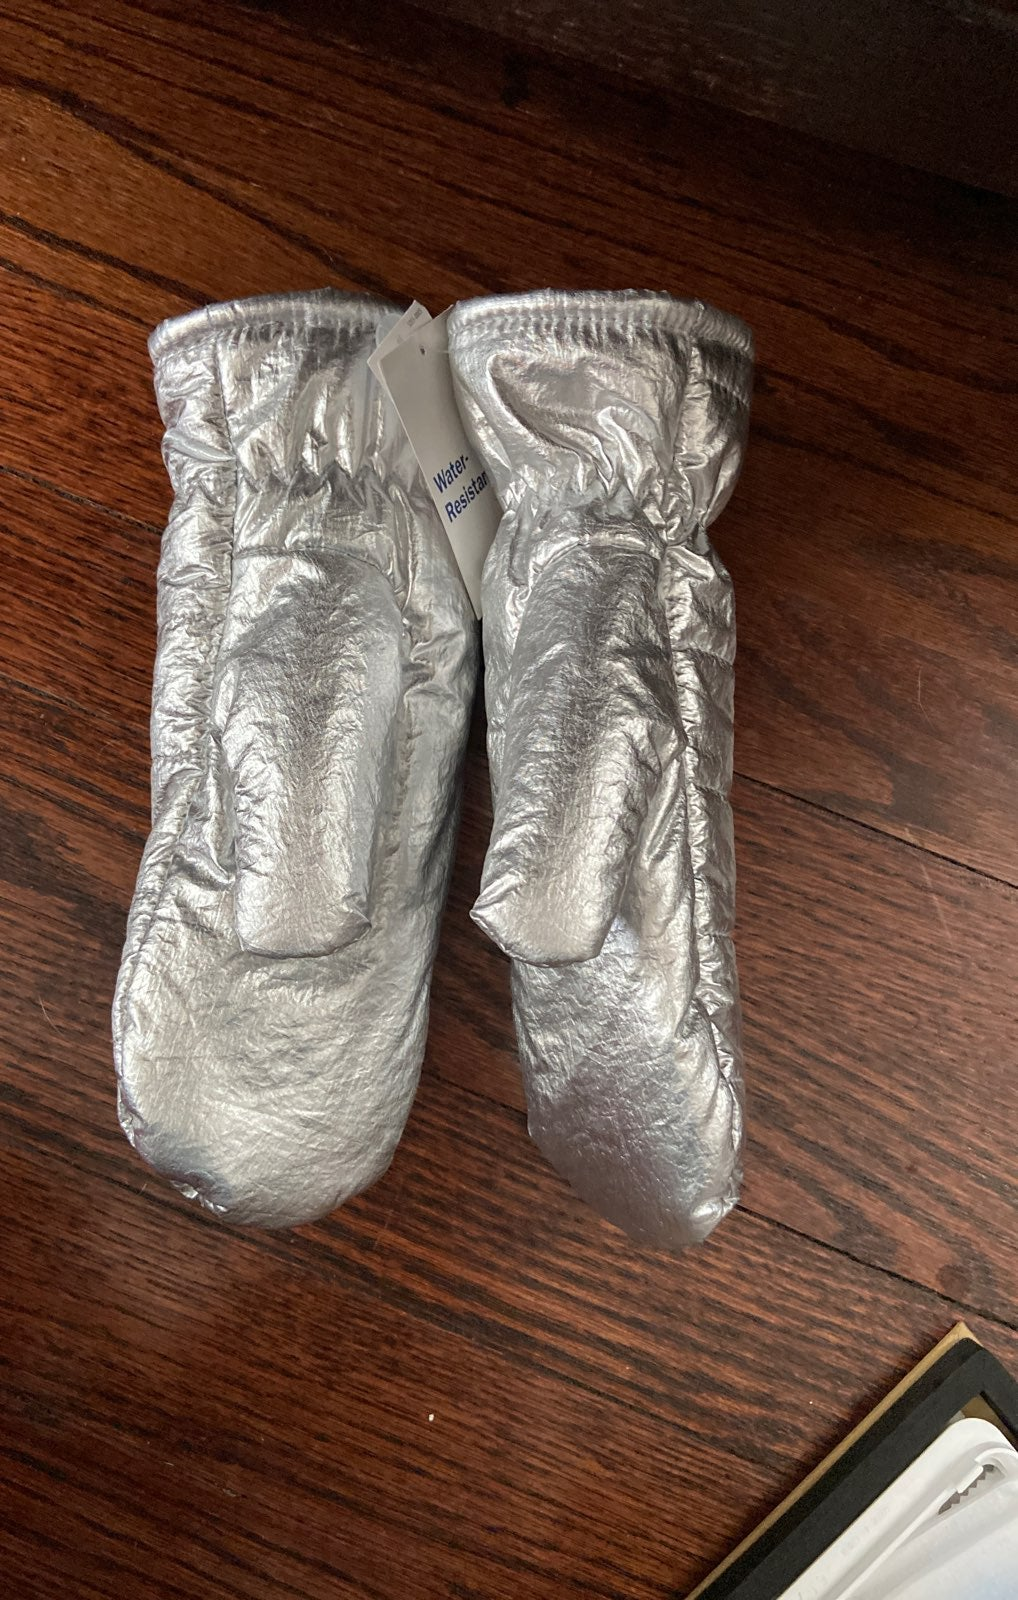 Silver insulated mittens